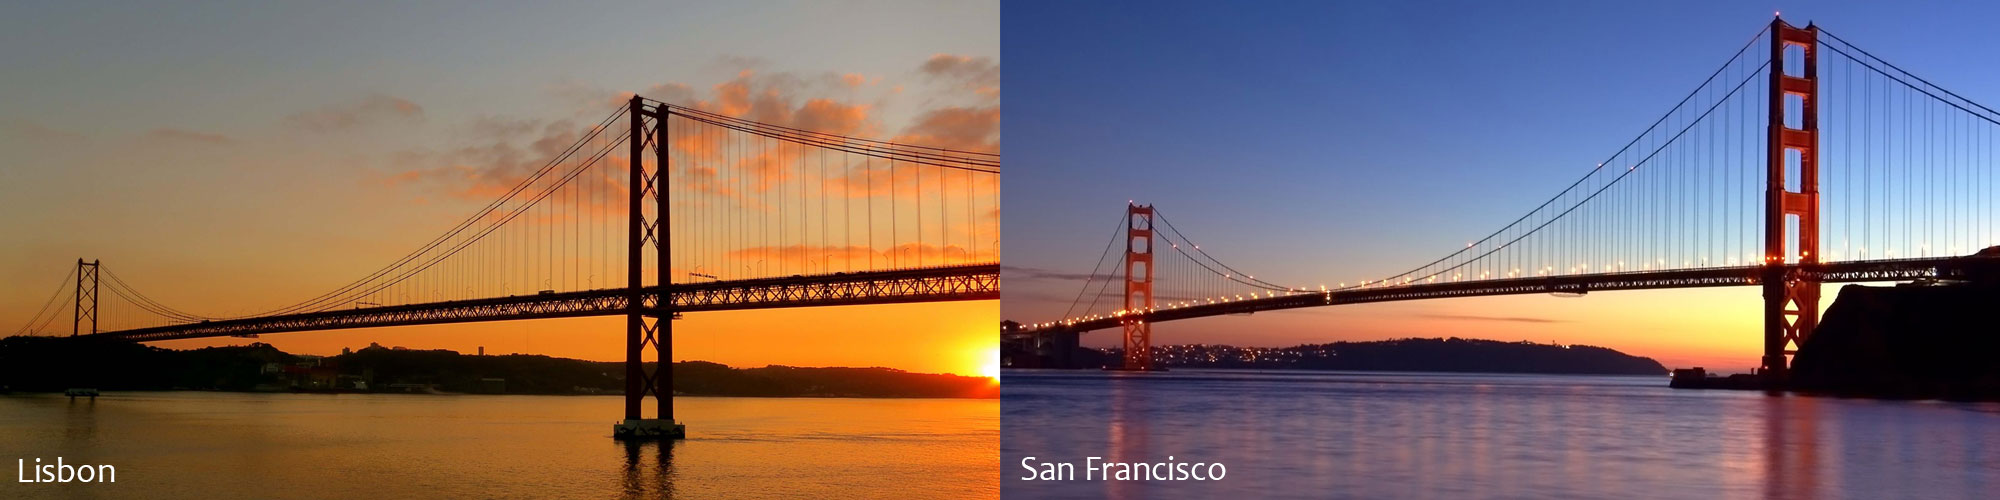 Are we in Lisbon or San Francisco?